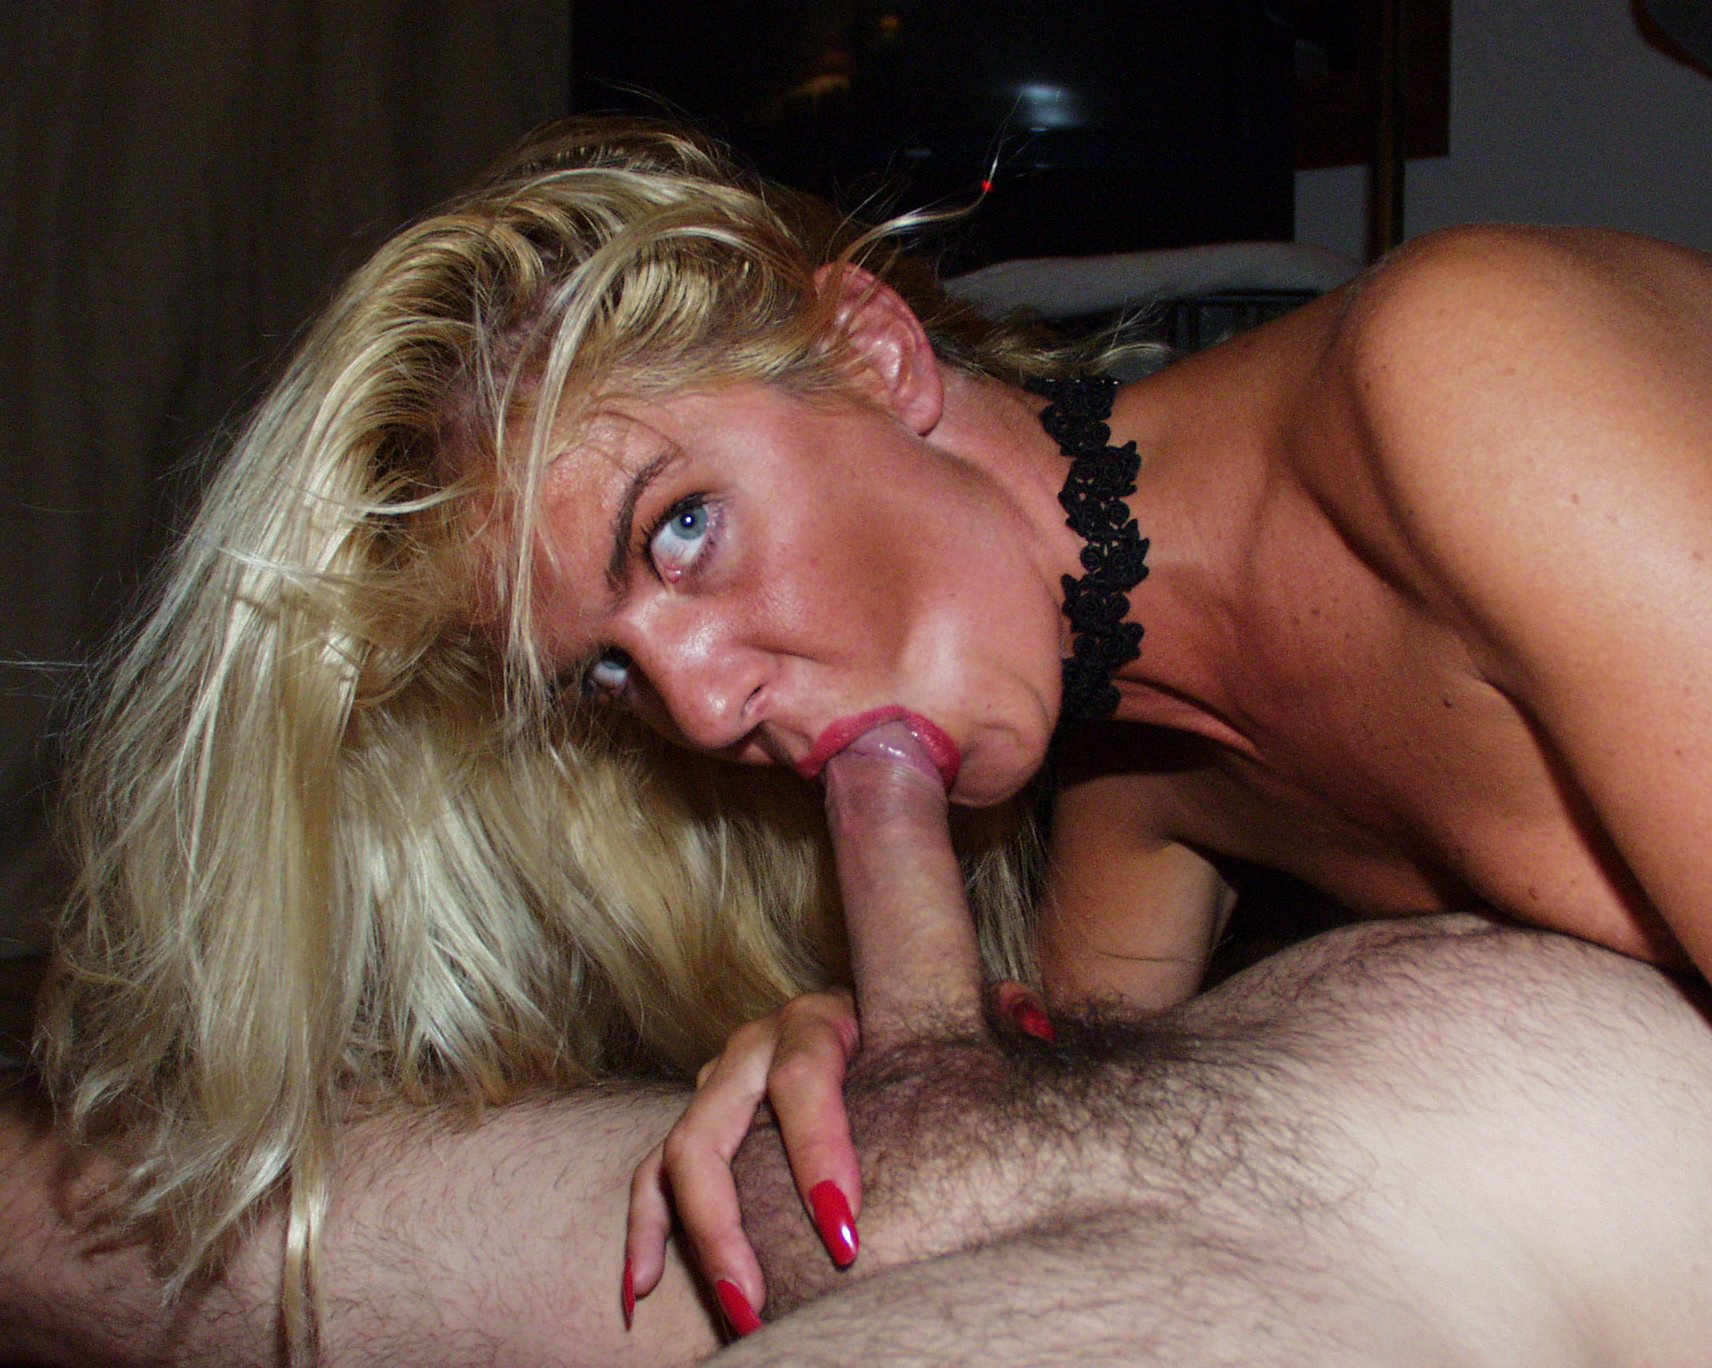 Amateur squirting female ejaculation